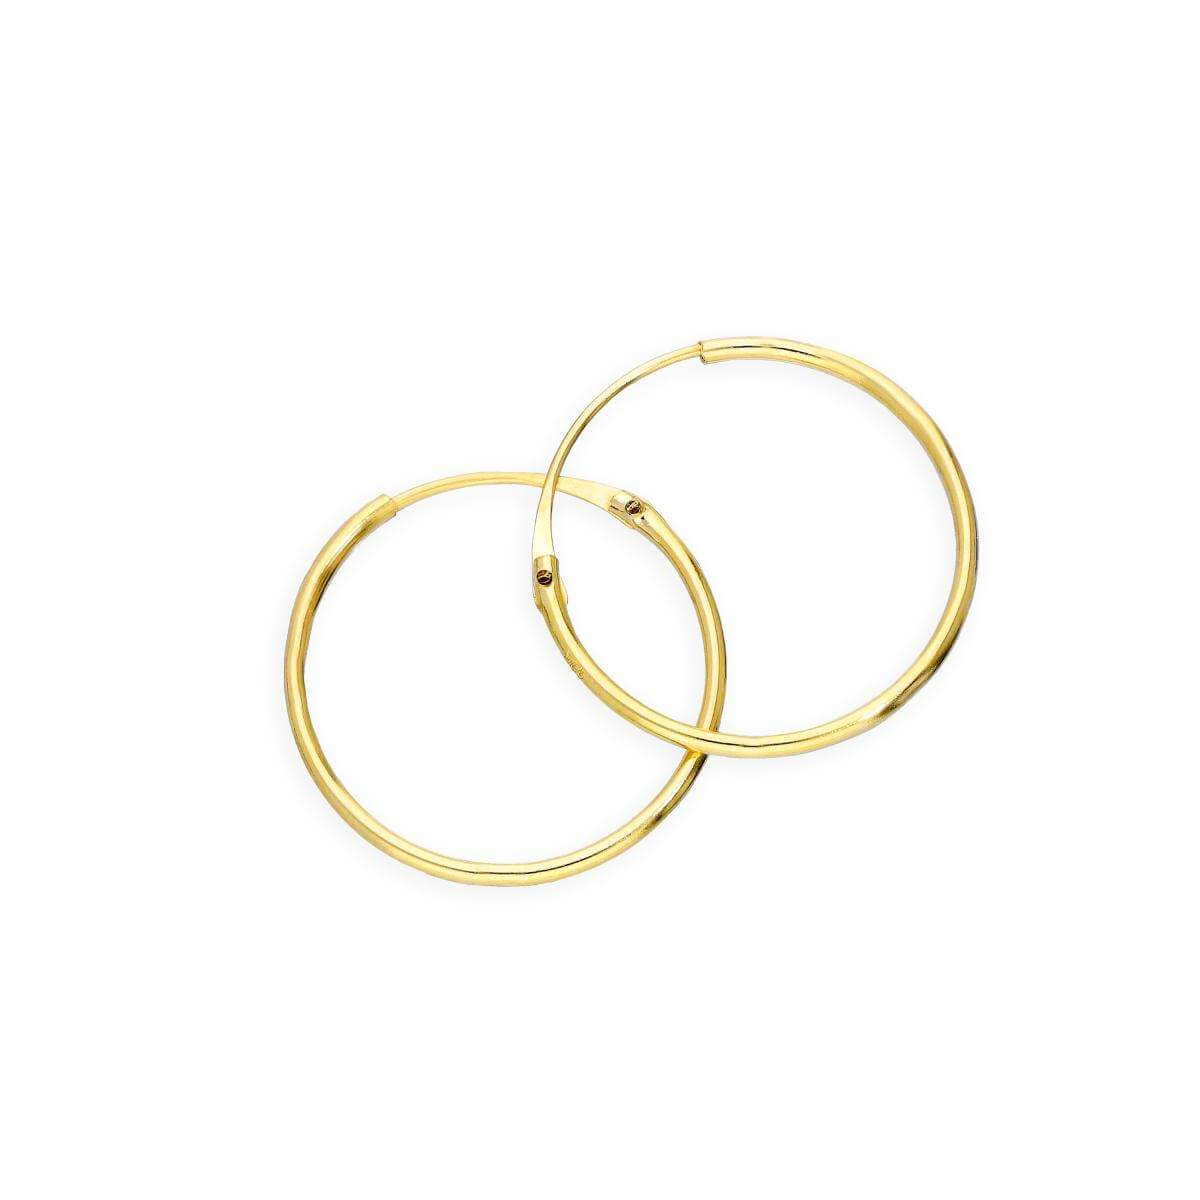 9ct Gold 0.8mm Tube Hoop Earrings 14mm